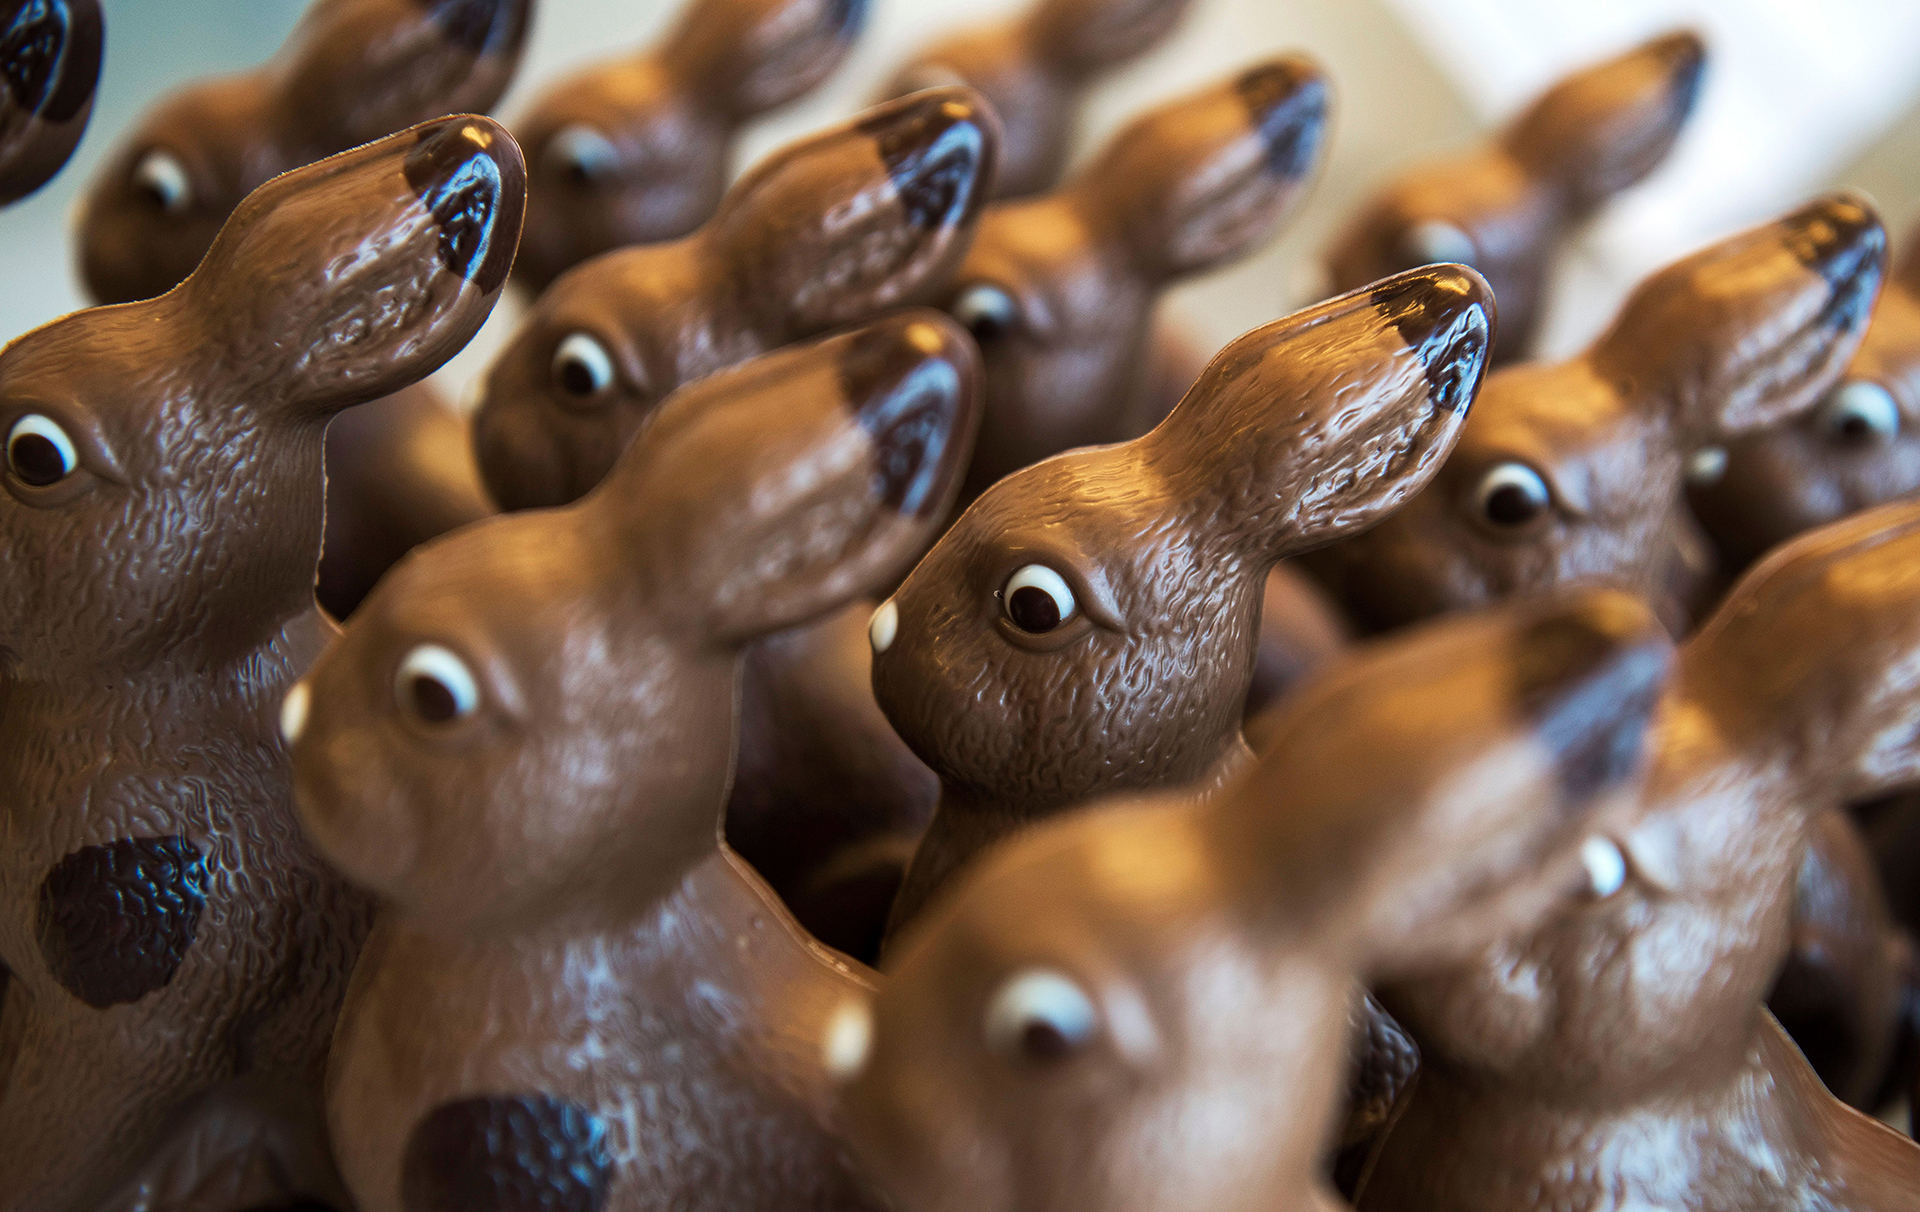 M&S's chocolate Easter bunny has gone viral thanks to its saucy pose